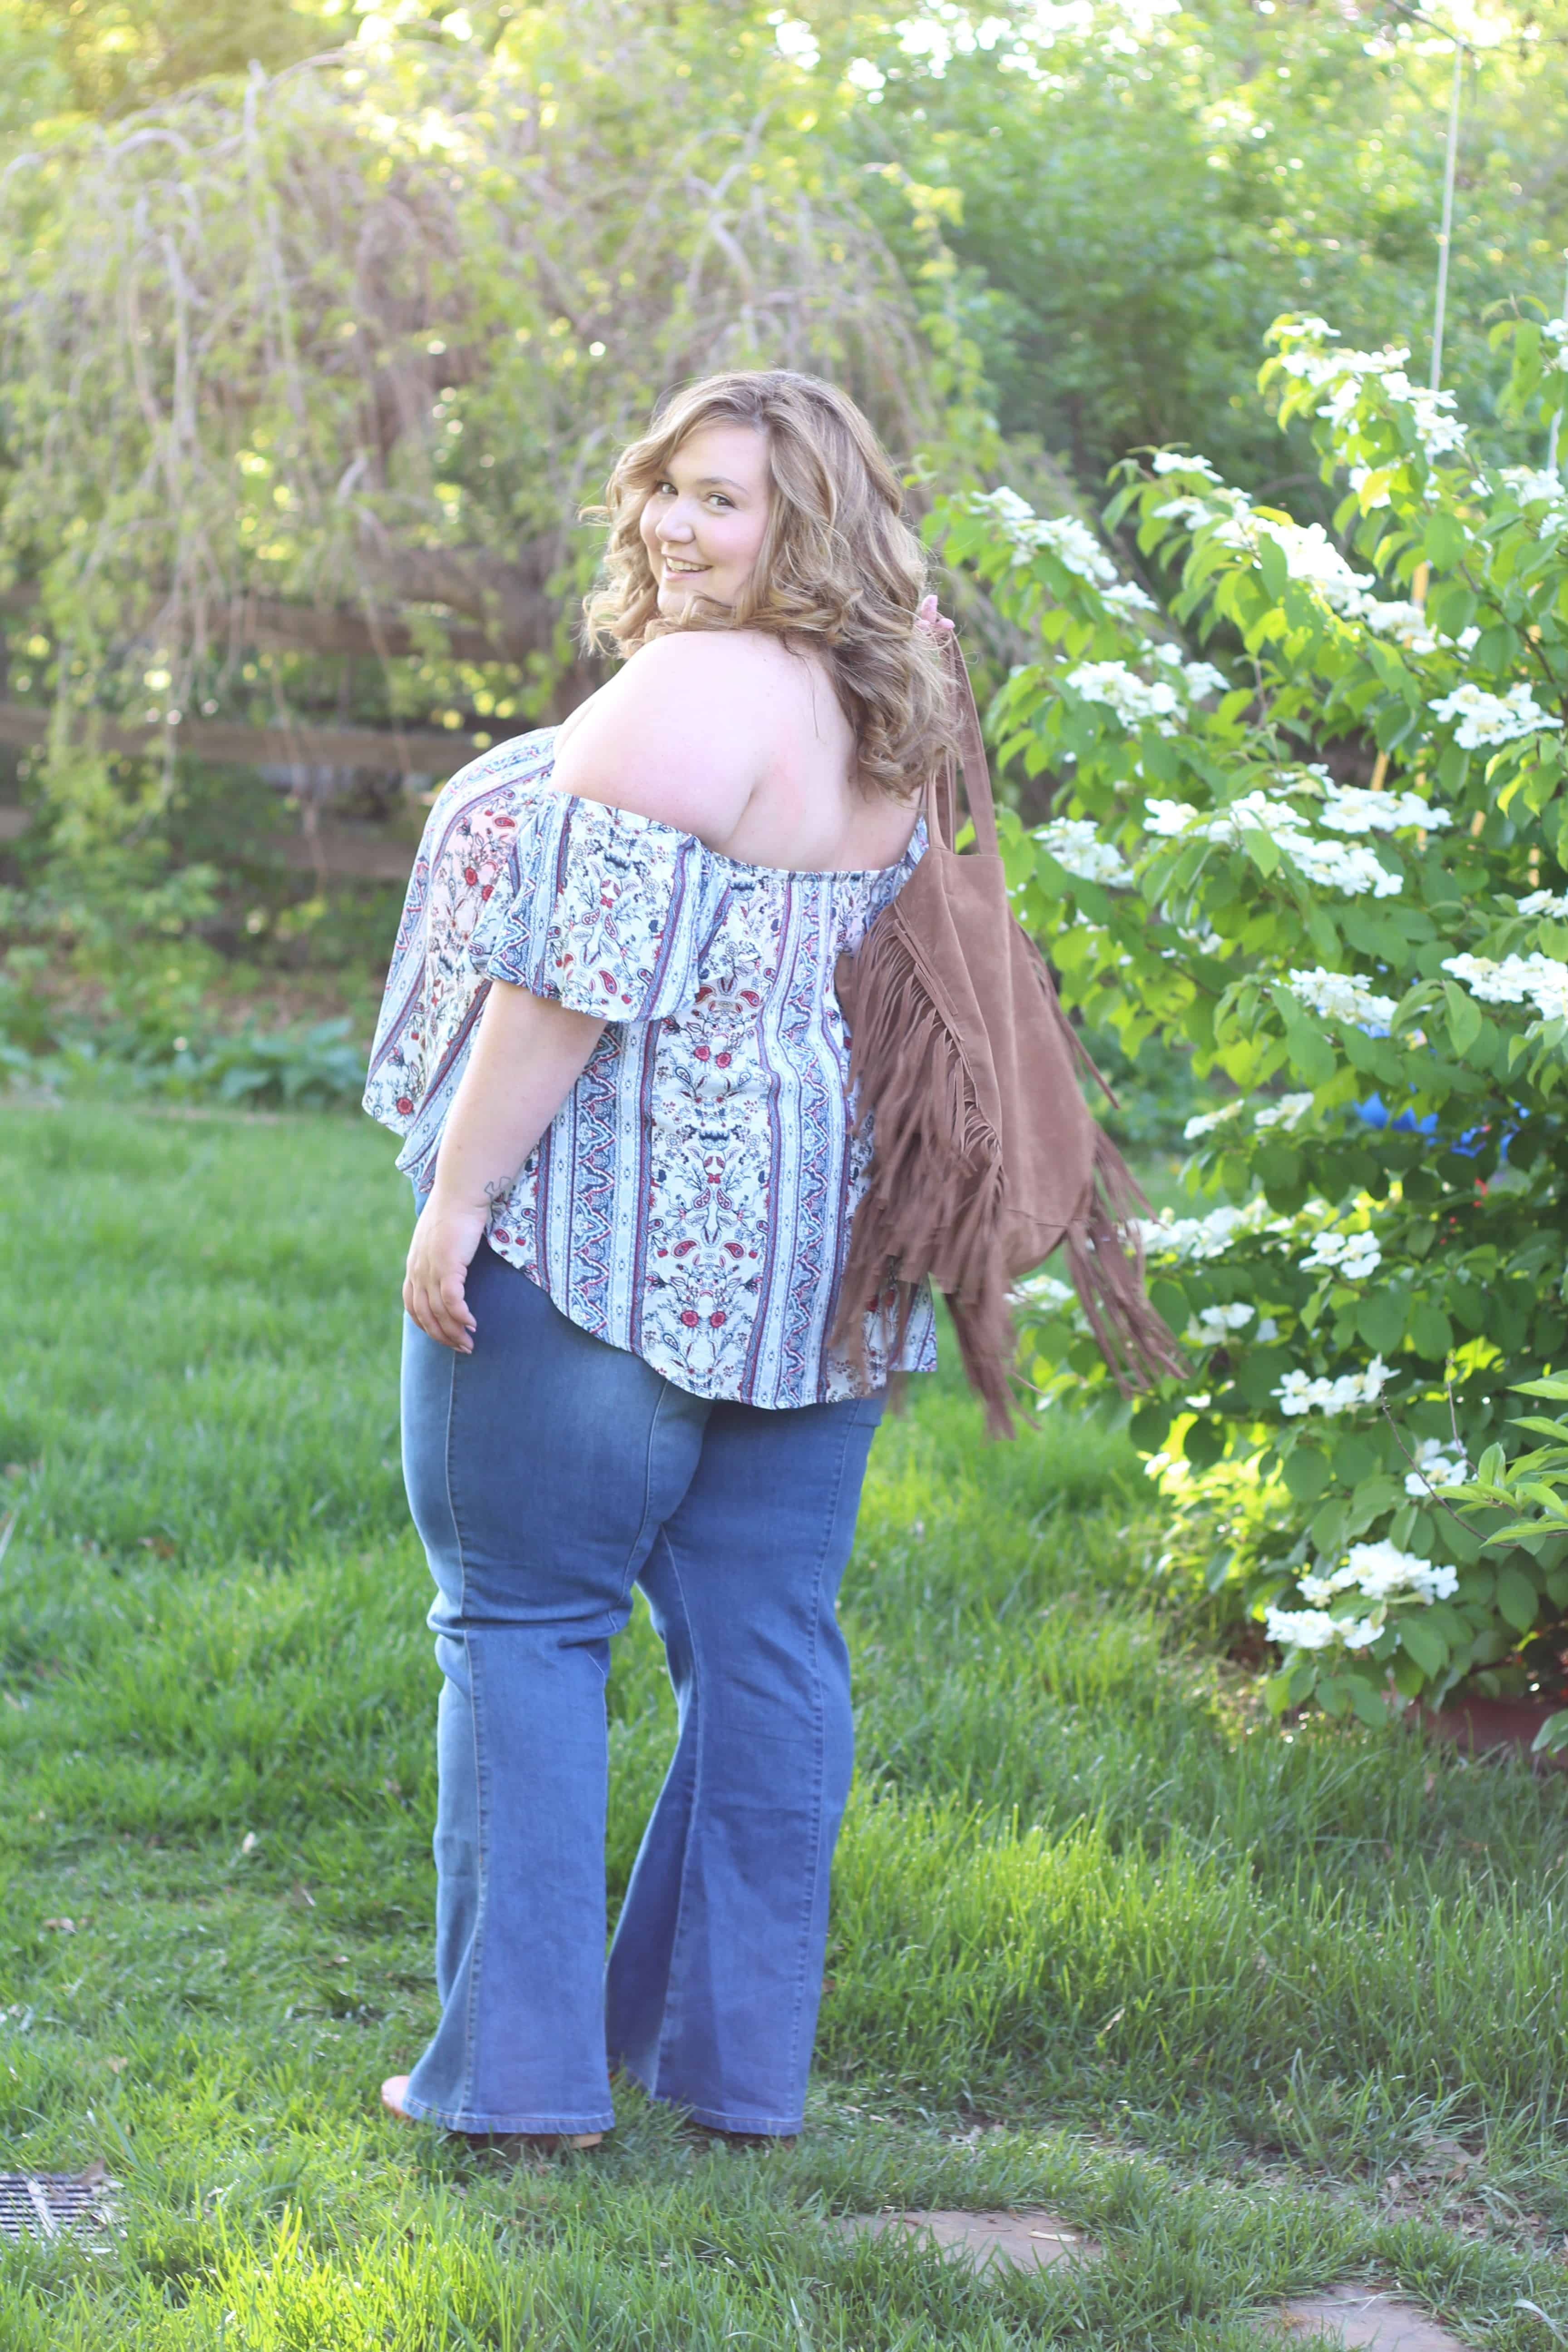 a4553c00e44 The Search For Plus Size Bell Bottoms - Fatgirlflow